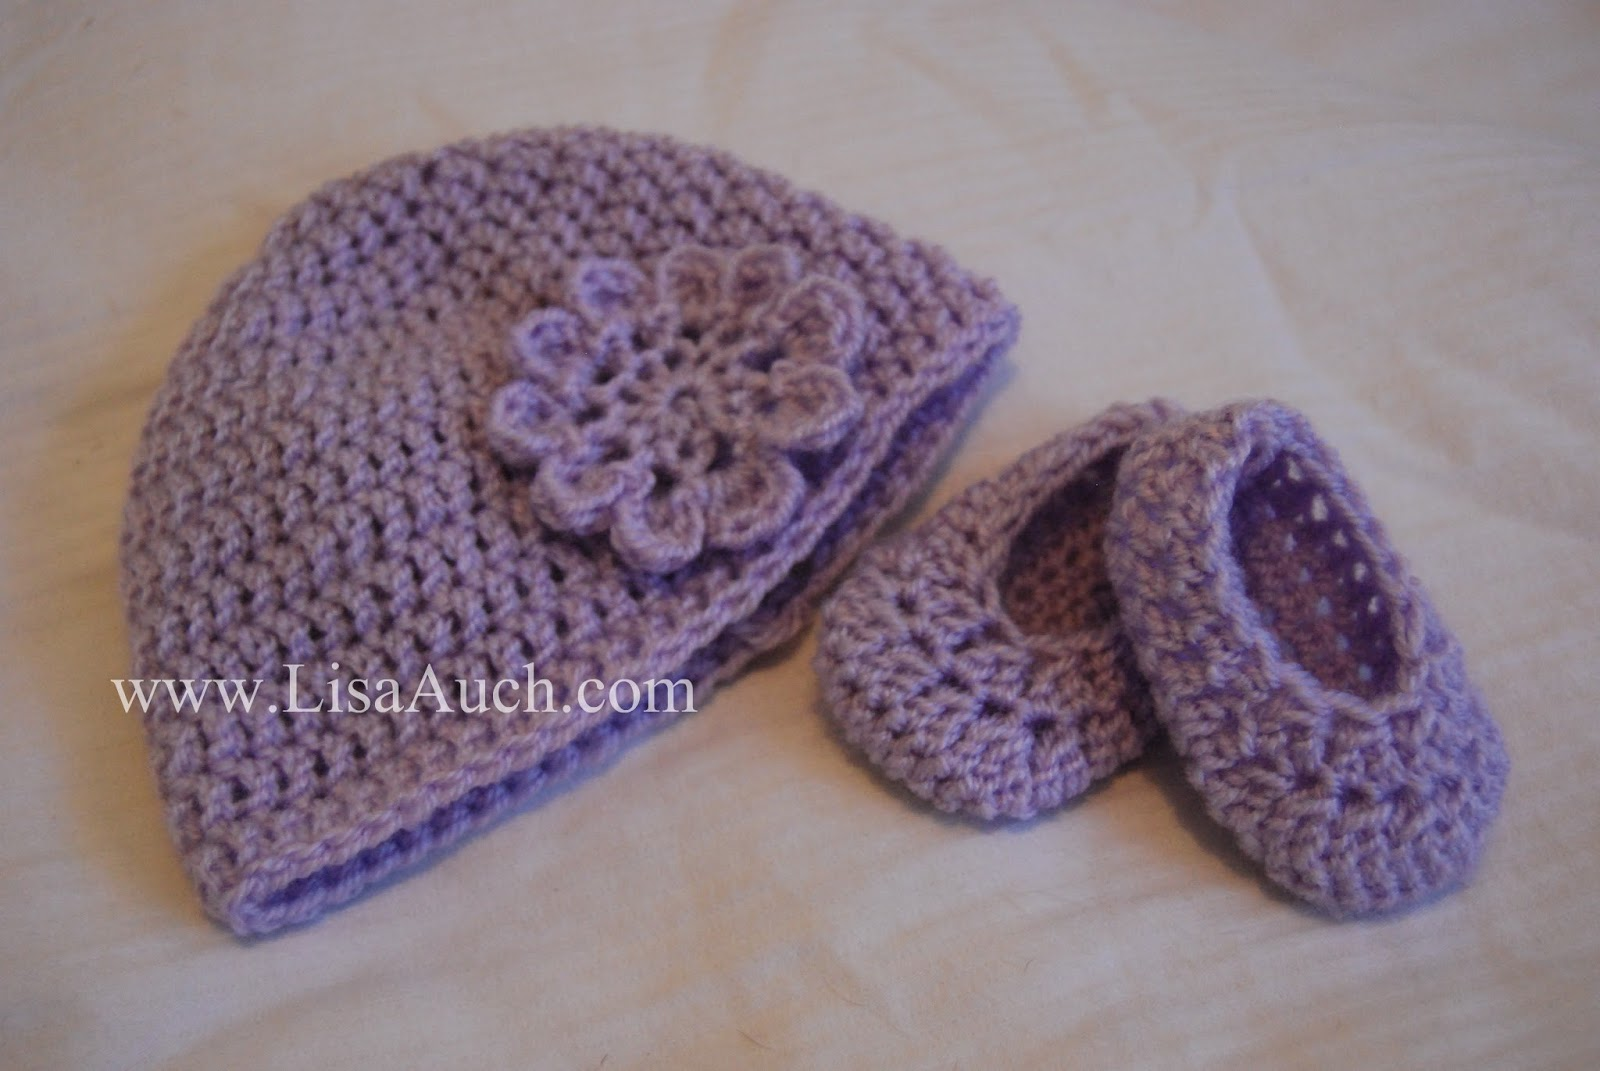 Free Crochet Patterns : Free Crochet Baby Booties and Hat Pattern